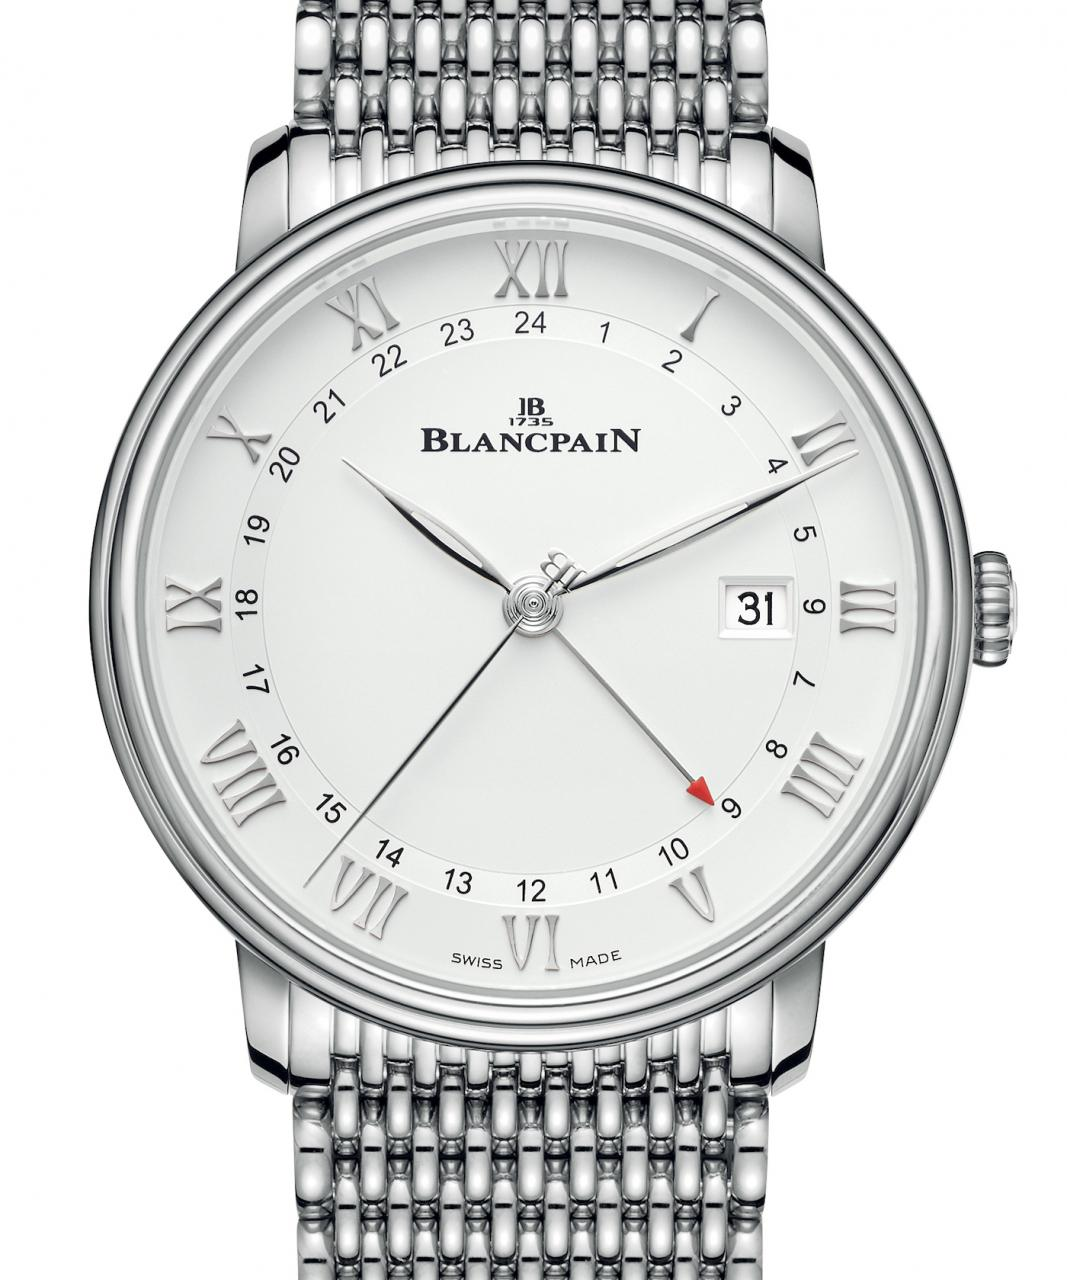 Blancpain Villeret GMT Date replica watches Offers Multiple Functions In A Pared-Back Package Watch Releases